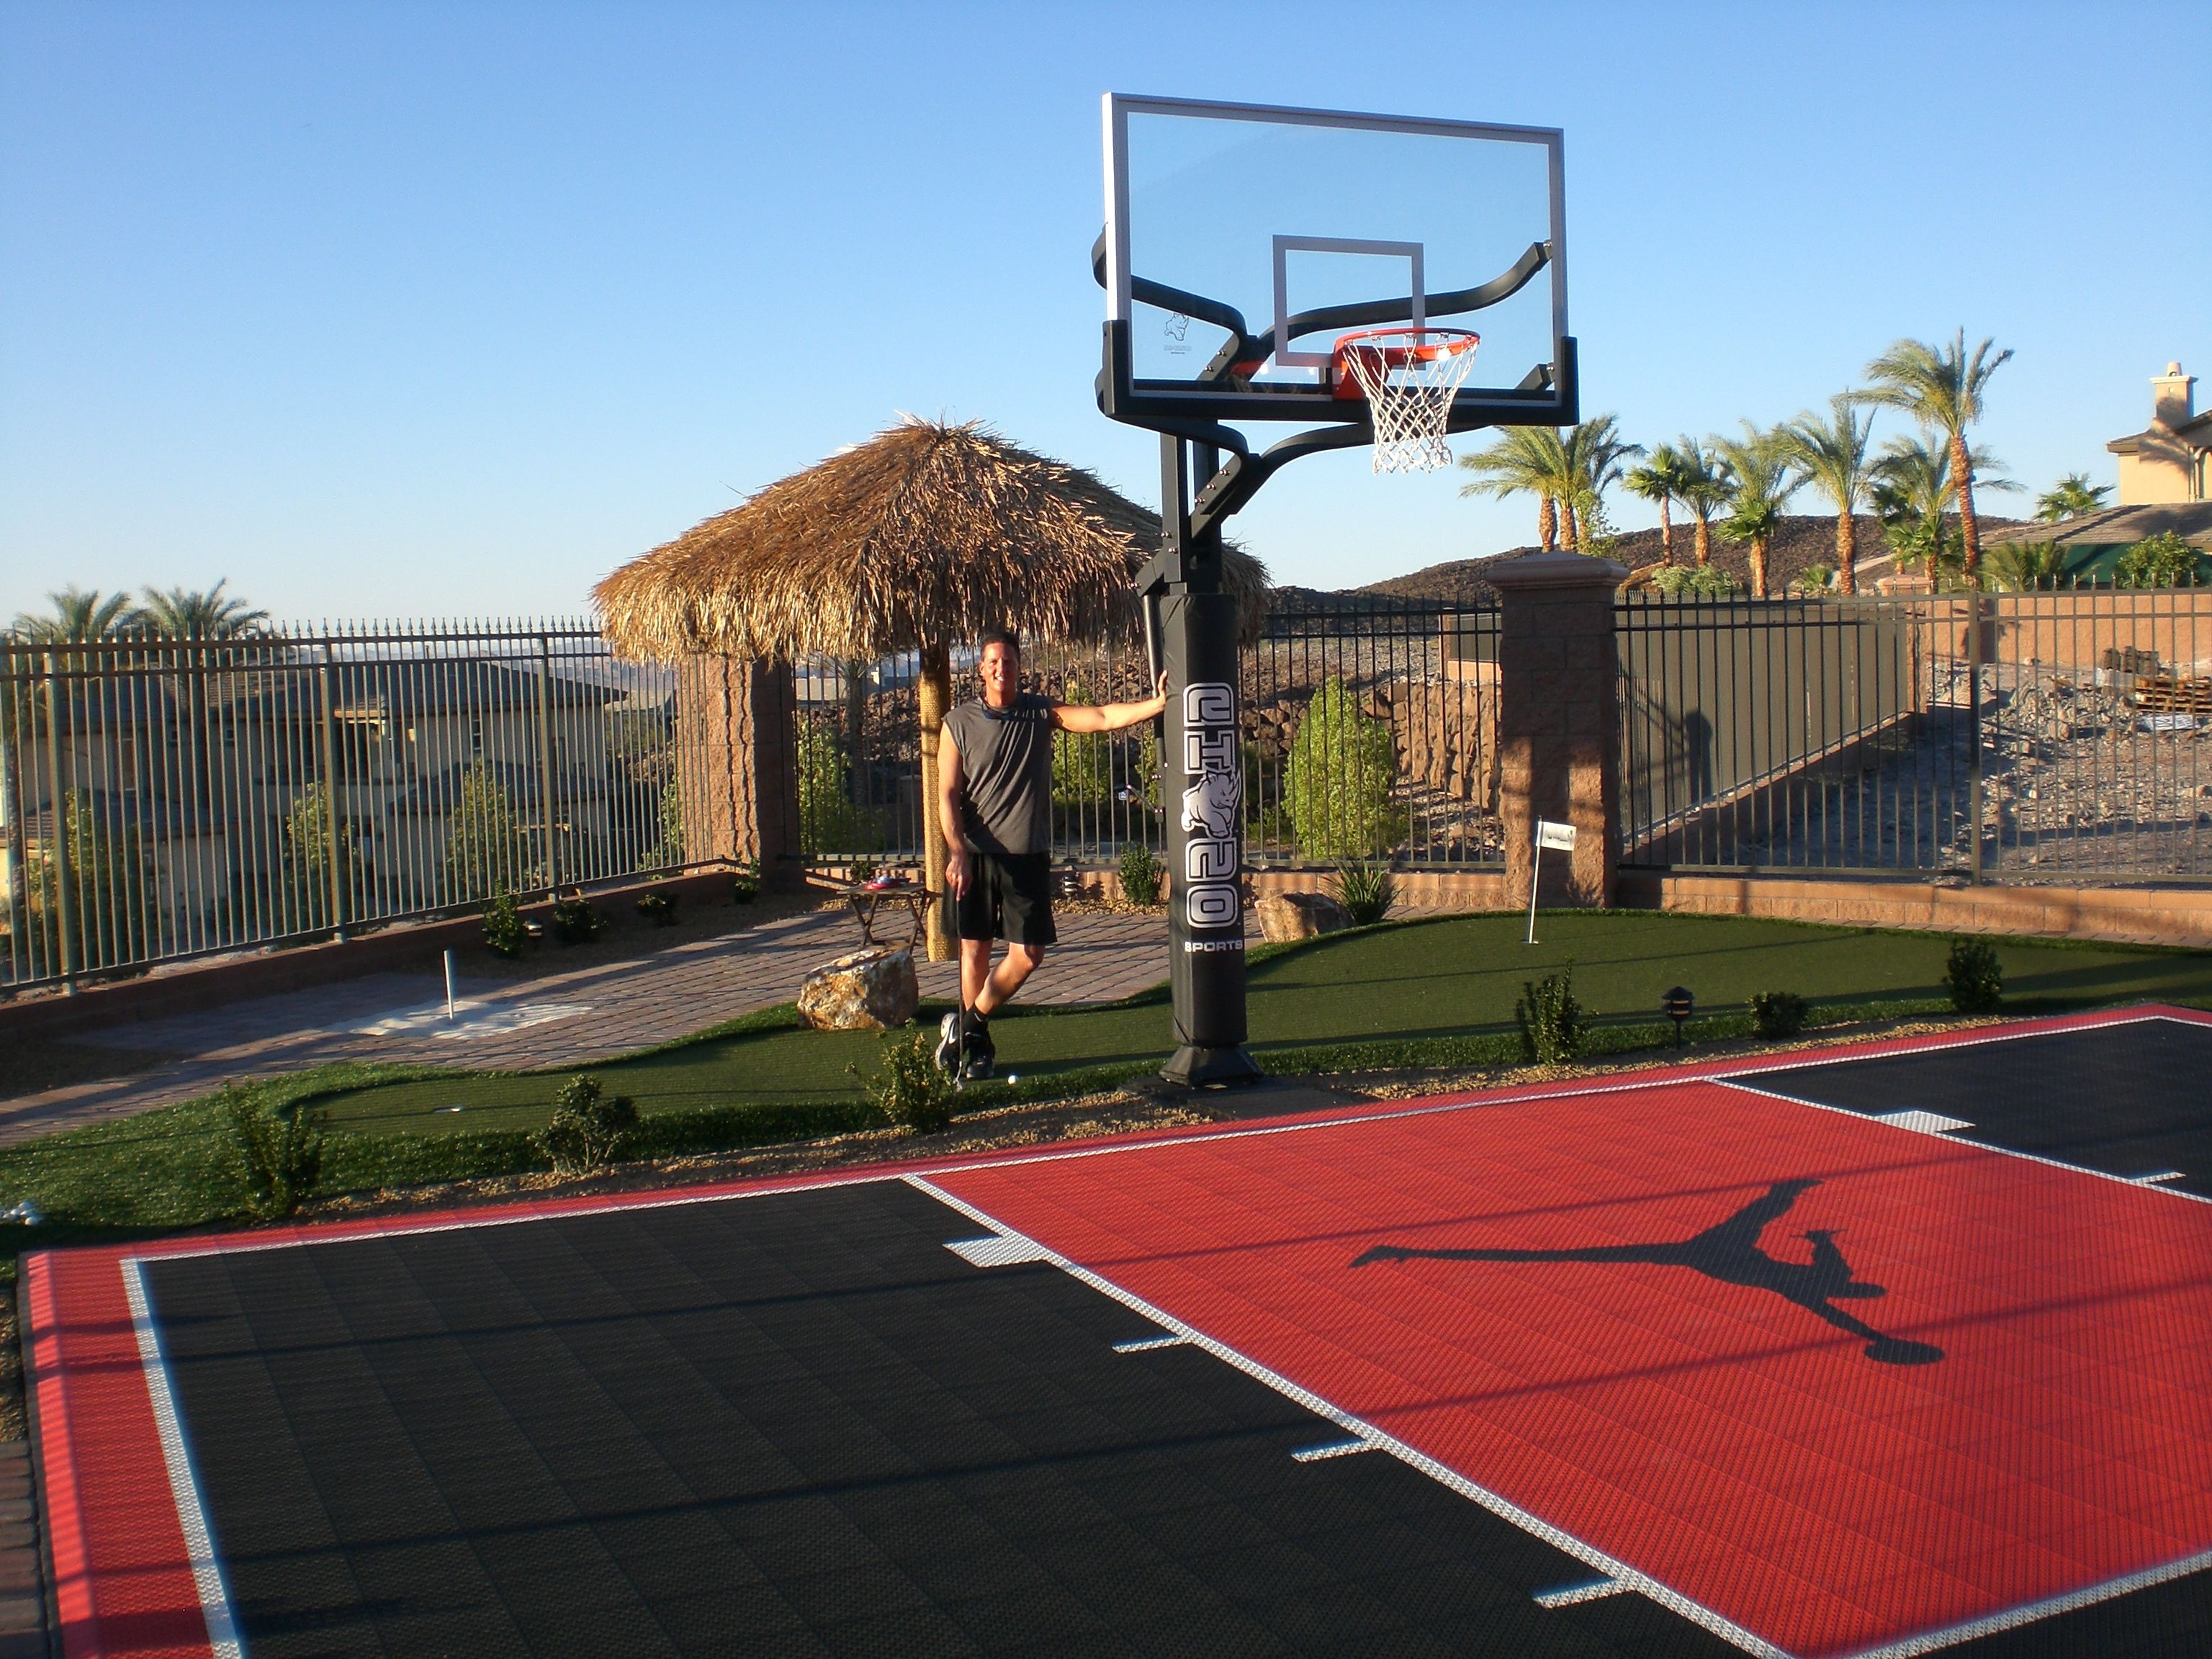 jamesmalinchak big money speaker backyard with custom basketball